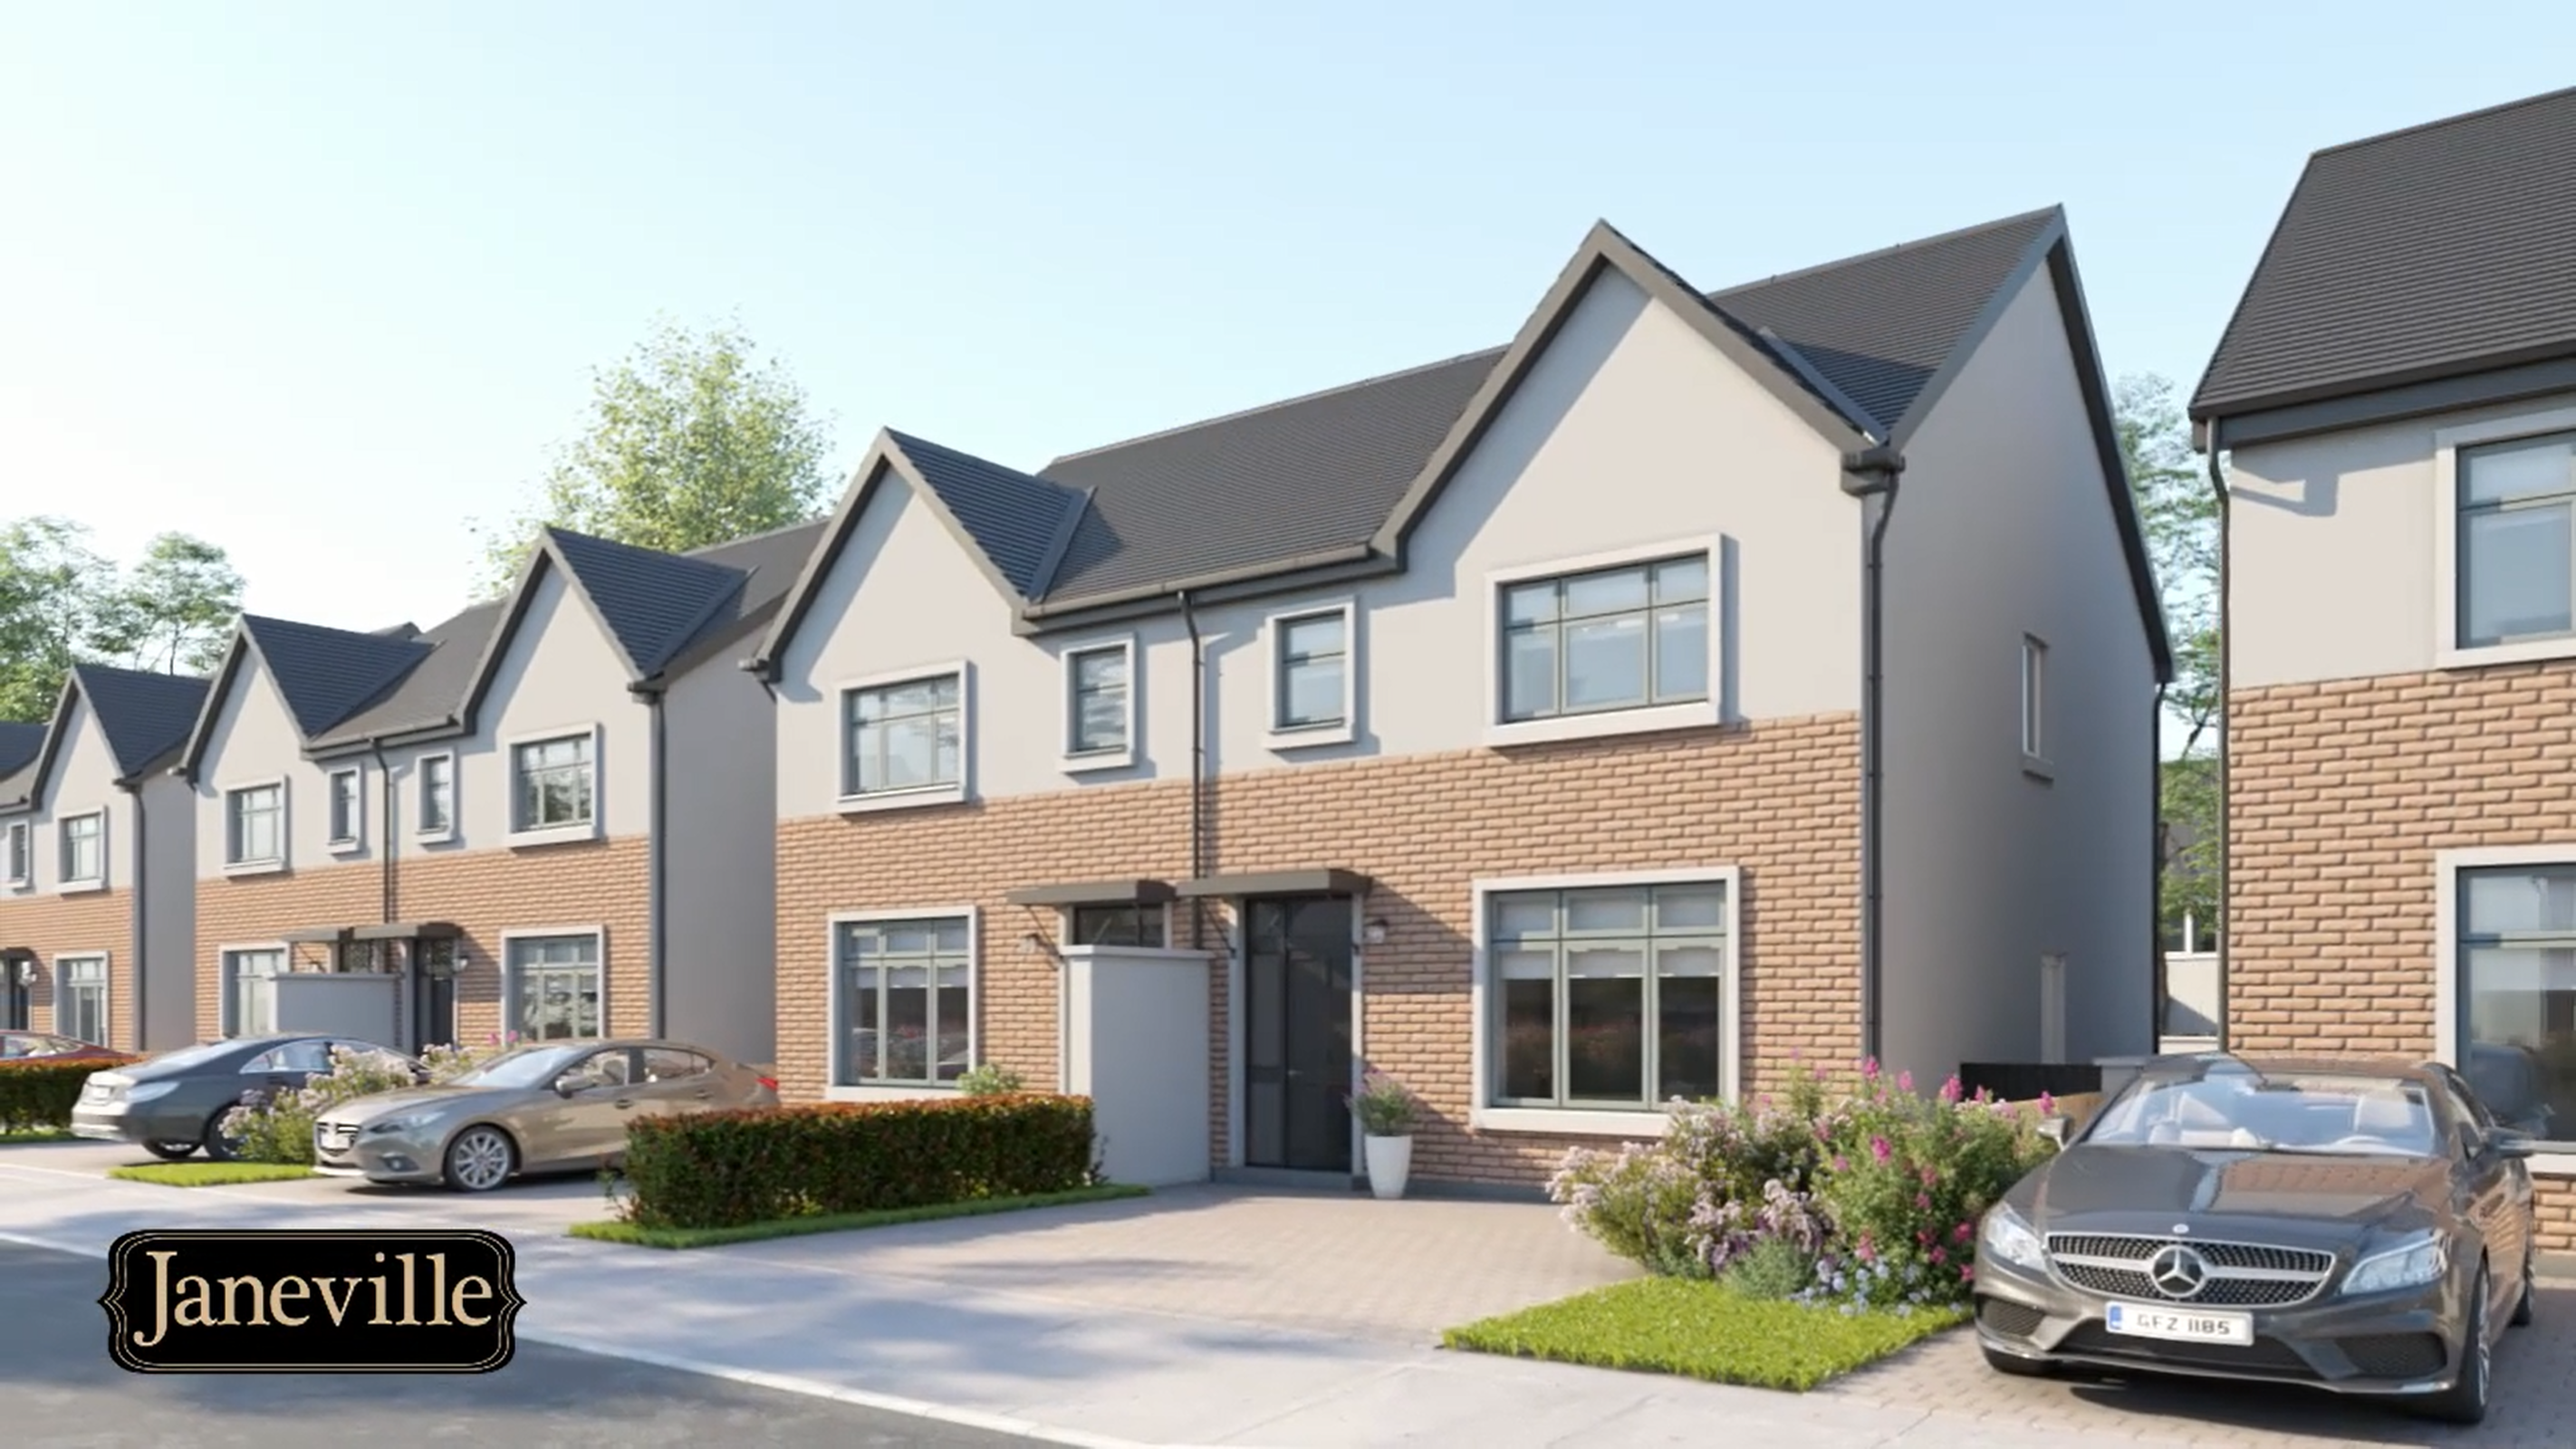 4 BED SEMI, 'Janeville', Carrigaline, Co. Cork